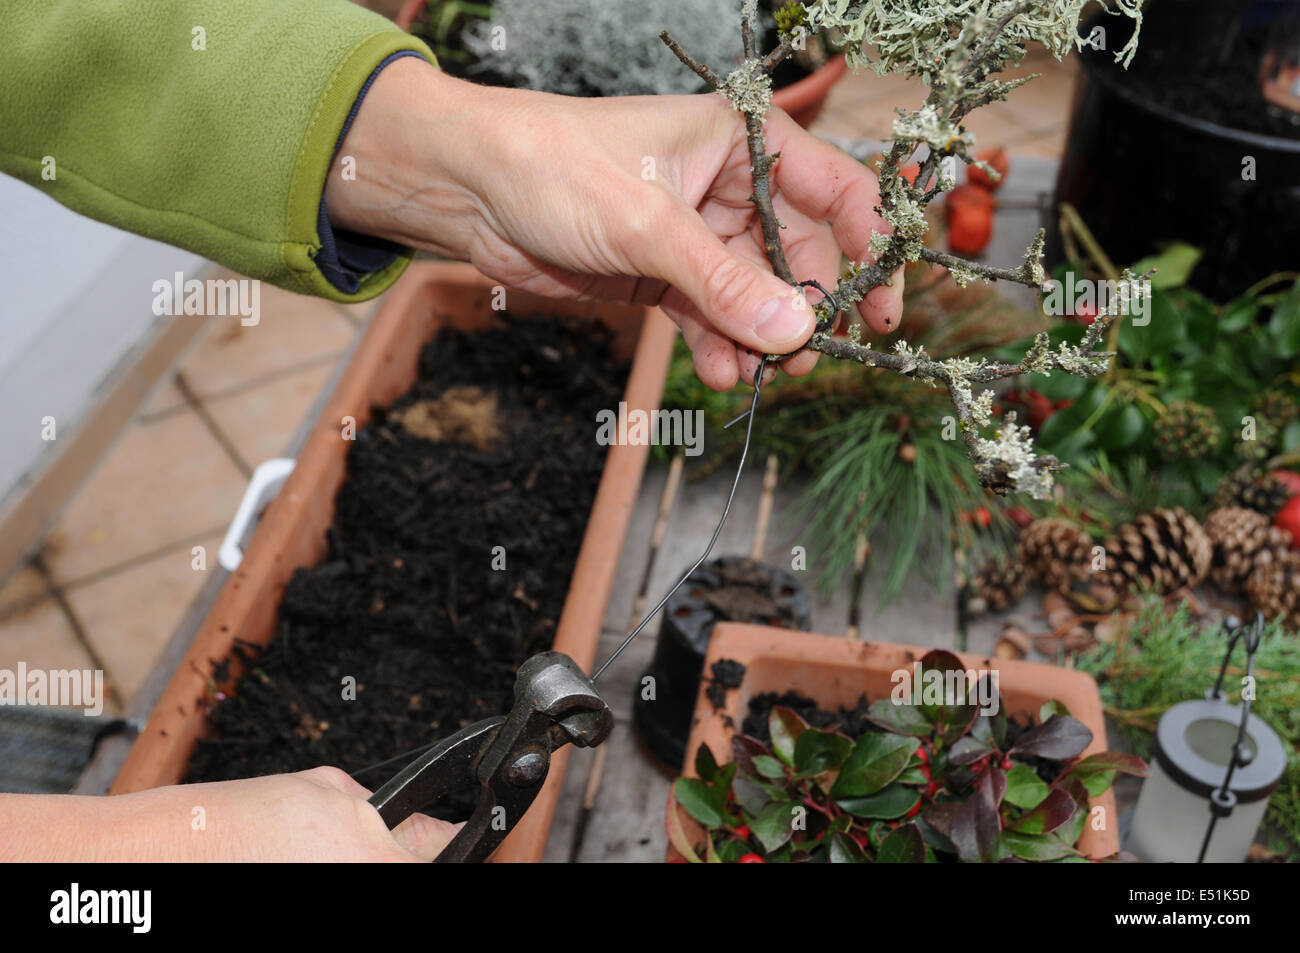 Floristry on balkony - Stock Image